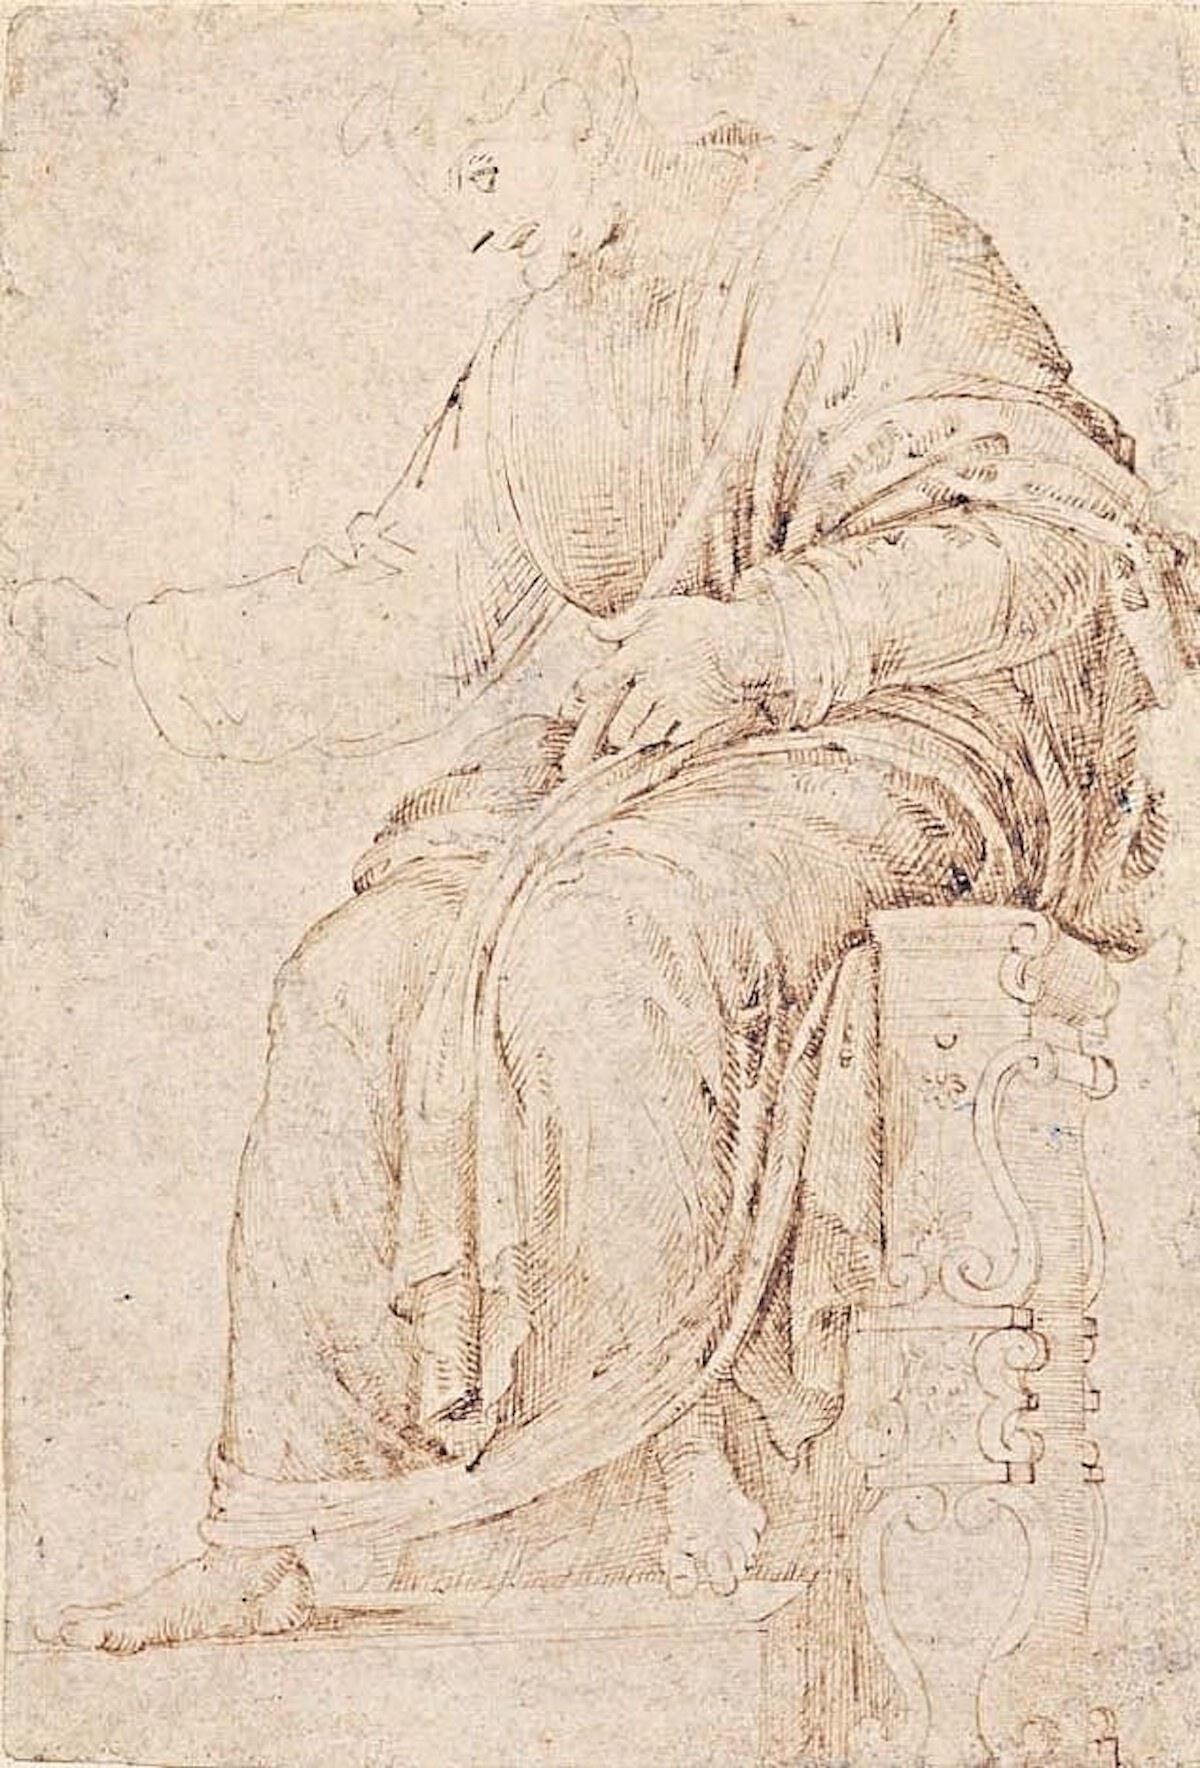 The Seated Man, ca. 1487, a drawing attributed to Michelangelo. Image courtesy the Museum of Fine Arts, Budapest.